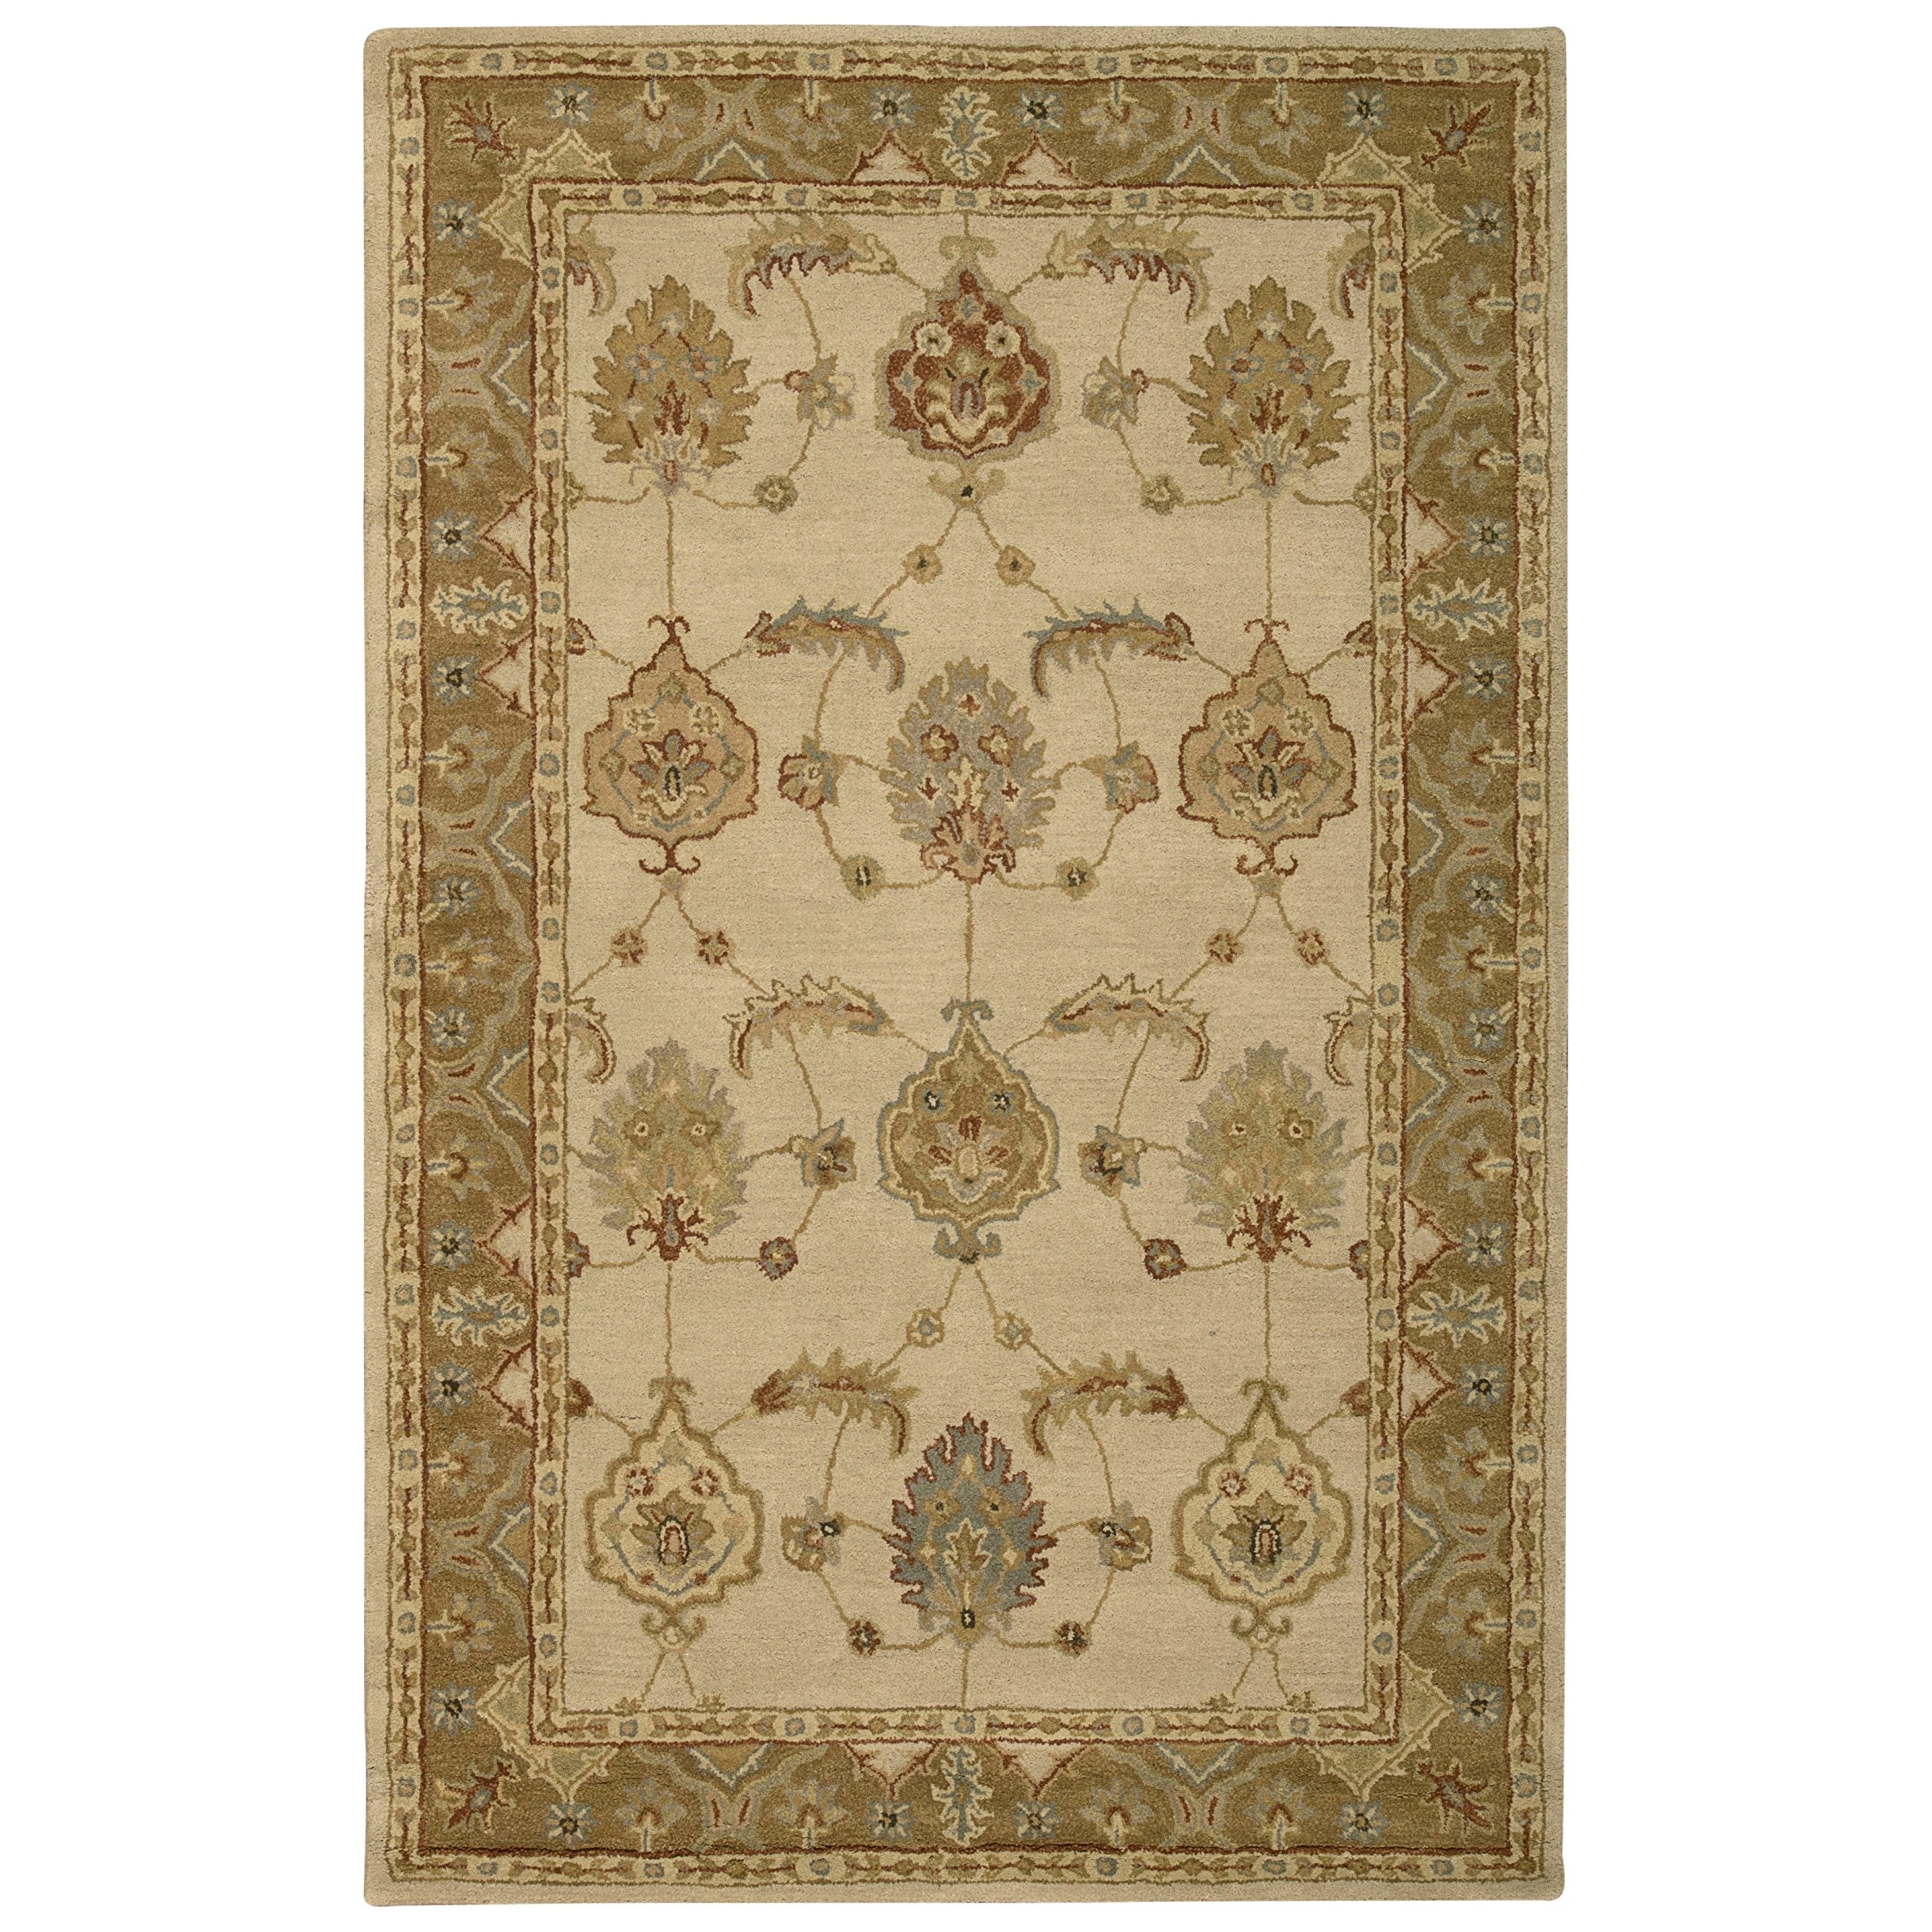 Nourison India House (IH87) Ivory/Gold Rectangle Area Rug, 5-Feet by 8-Feet  (5' x 8')